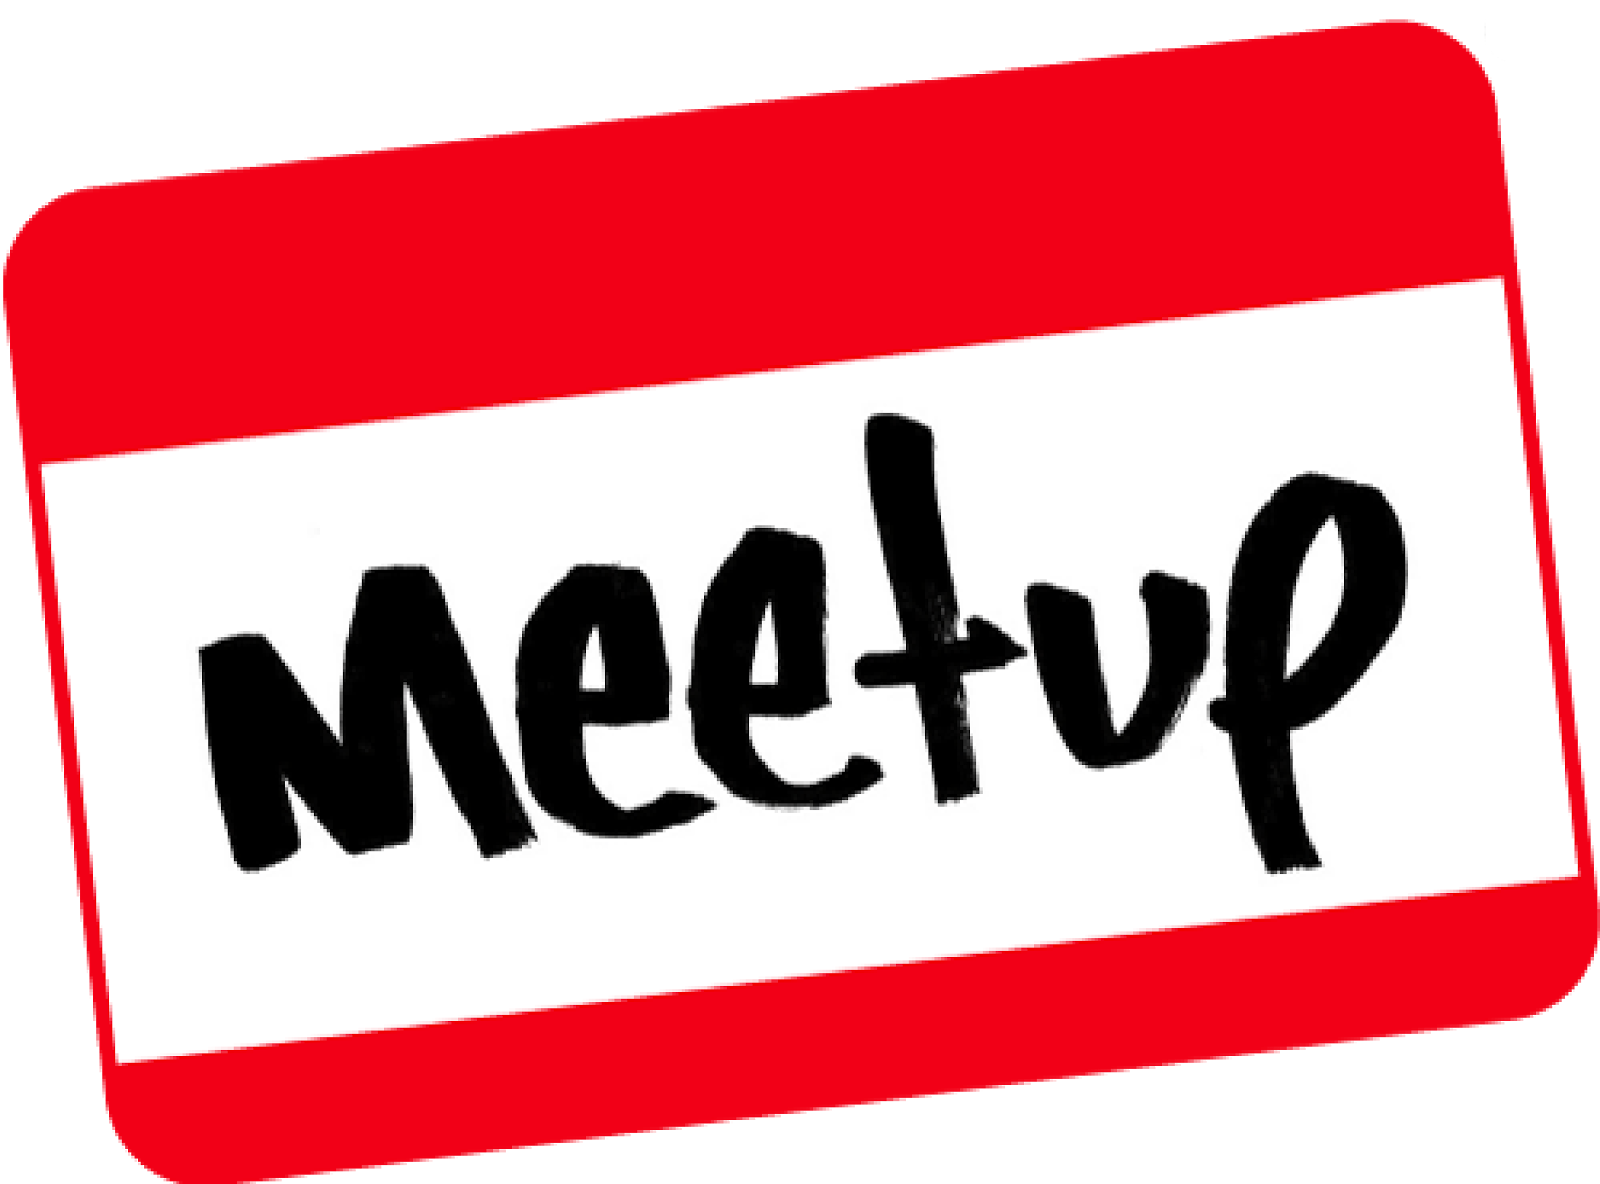 https://www.meetup.com/es-ES/madriagil/events/258041679/